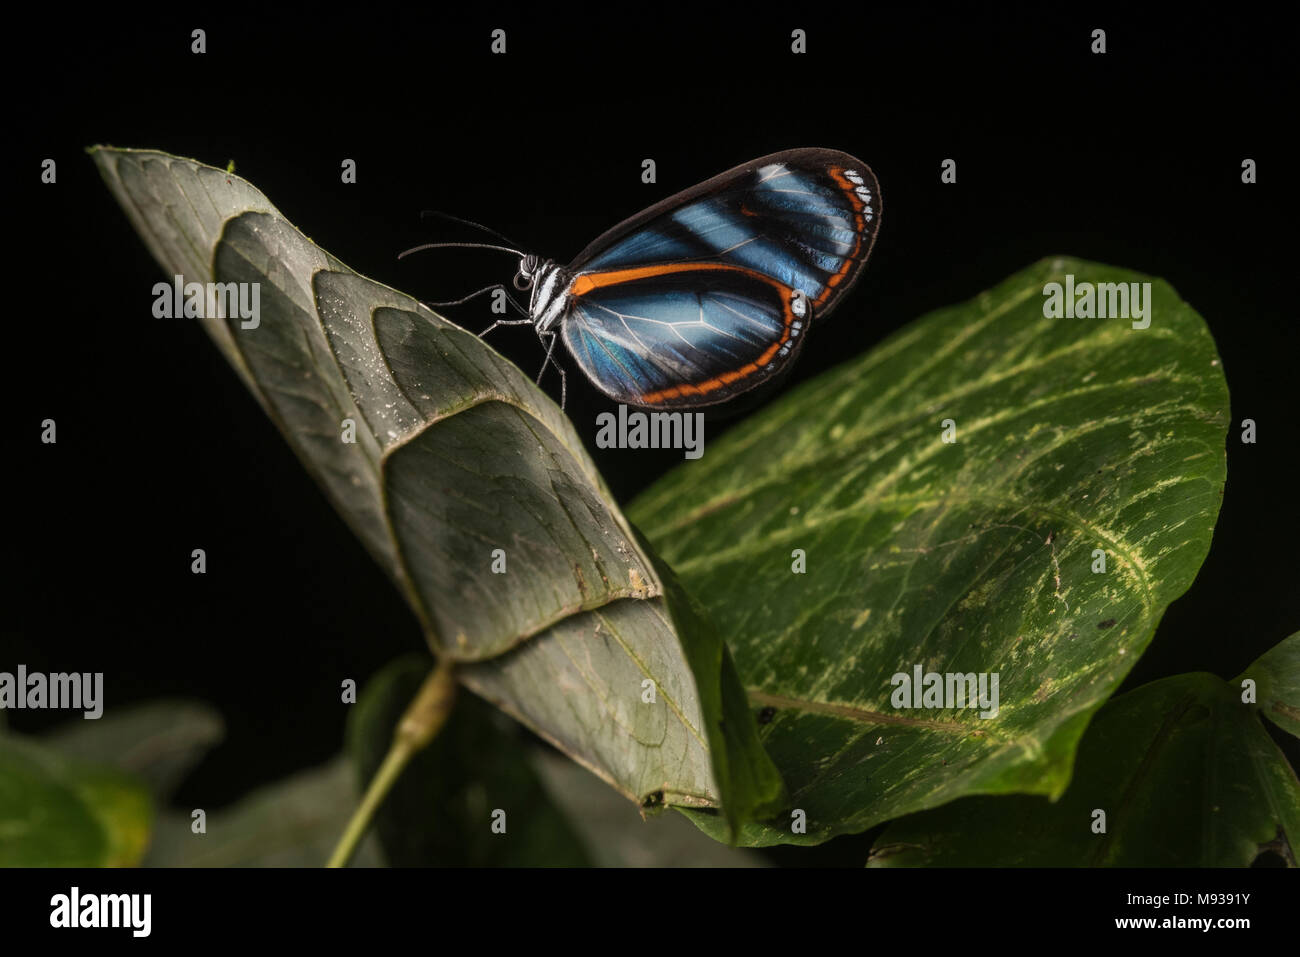 A Heliconius butterfly from Peru, this species has been used in influential mimicry studies to understand ecology and evolution. - Stock Image